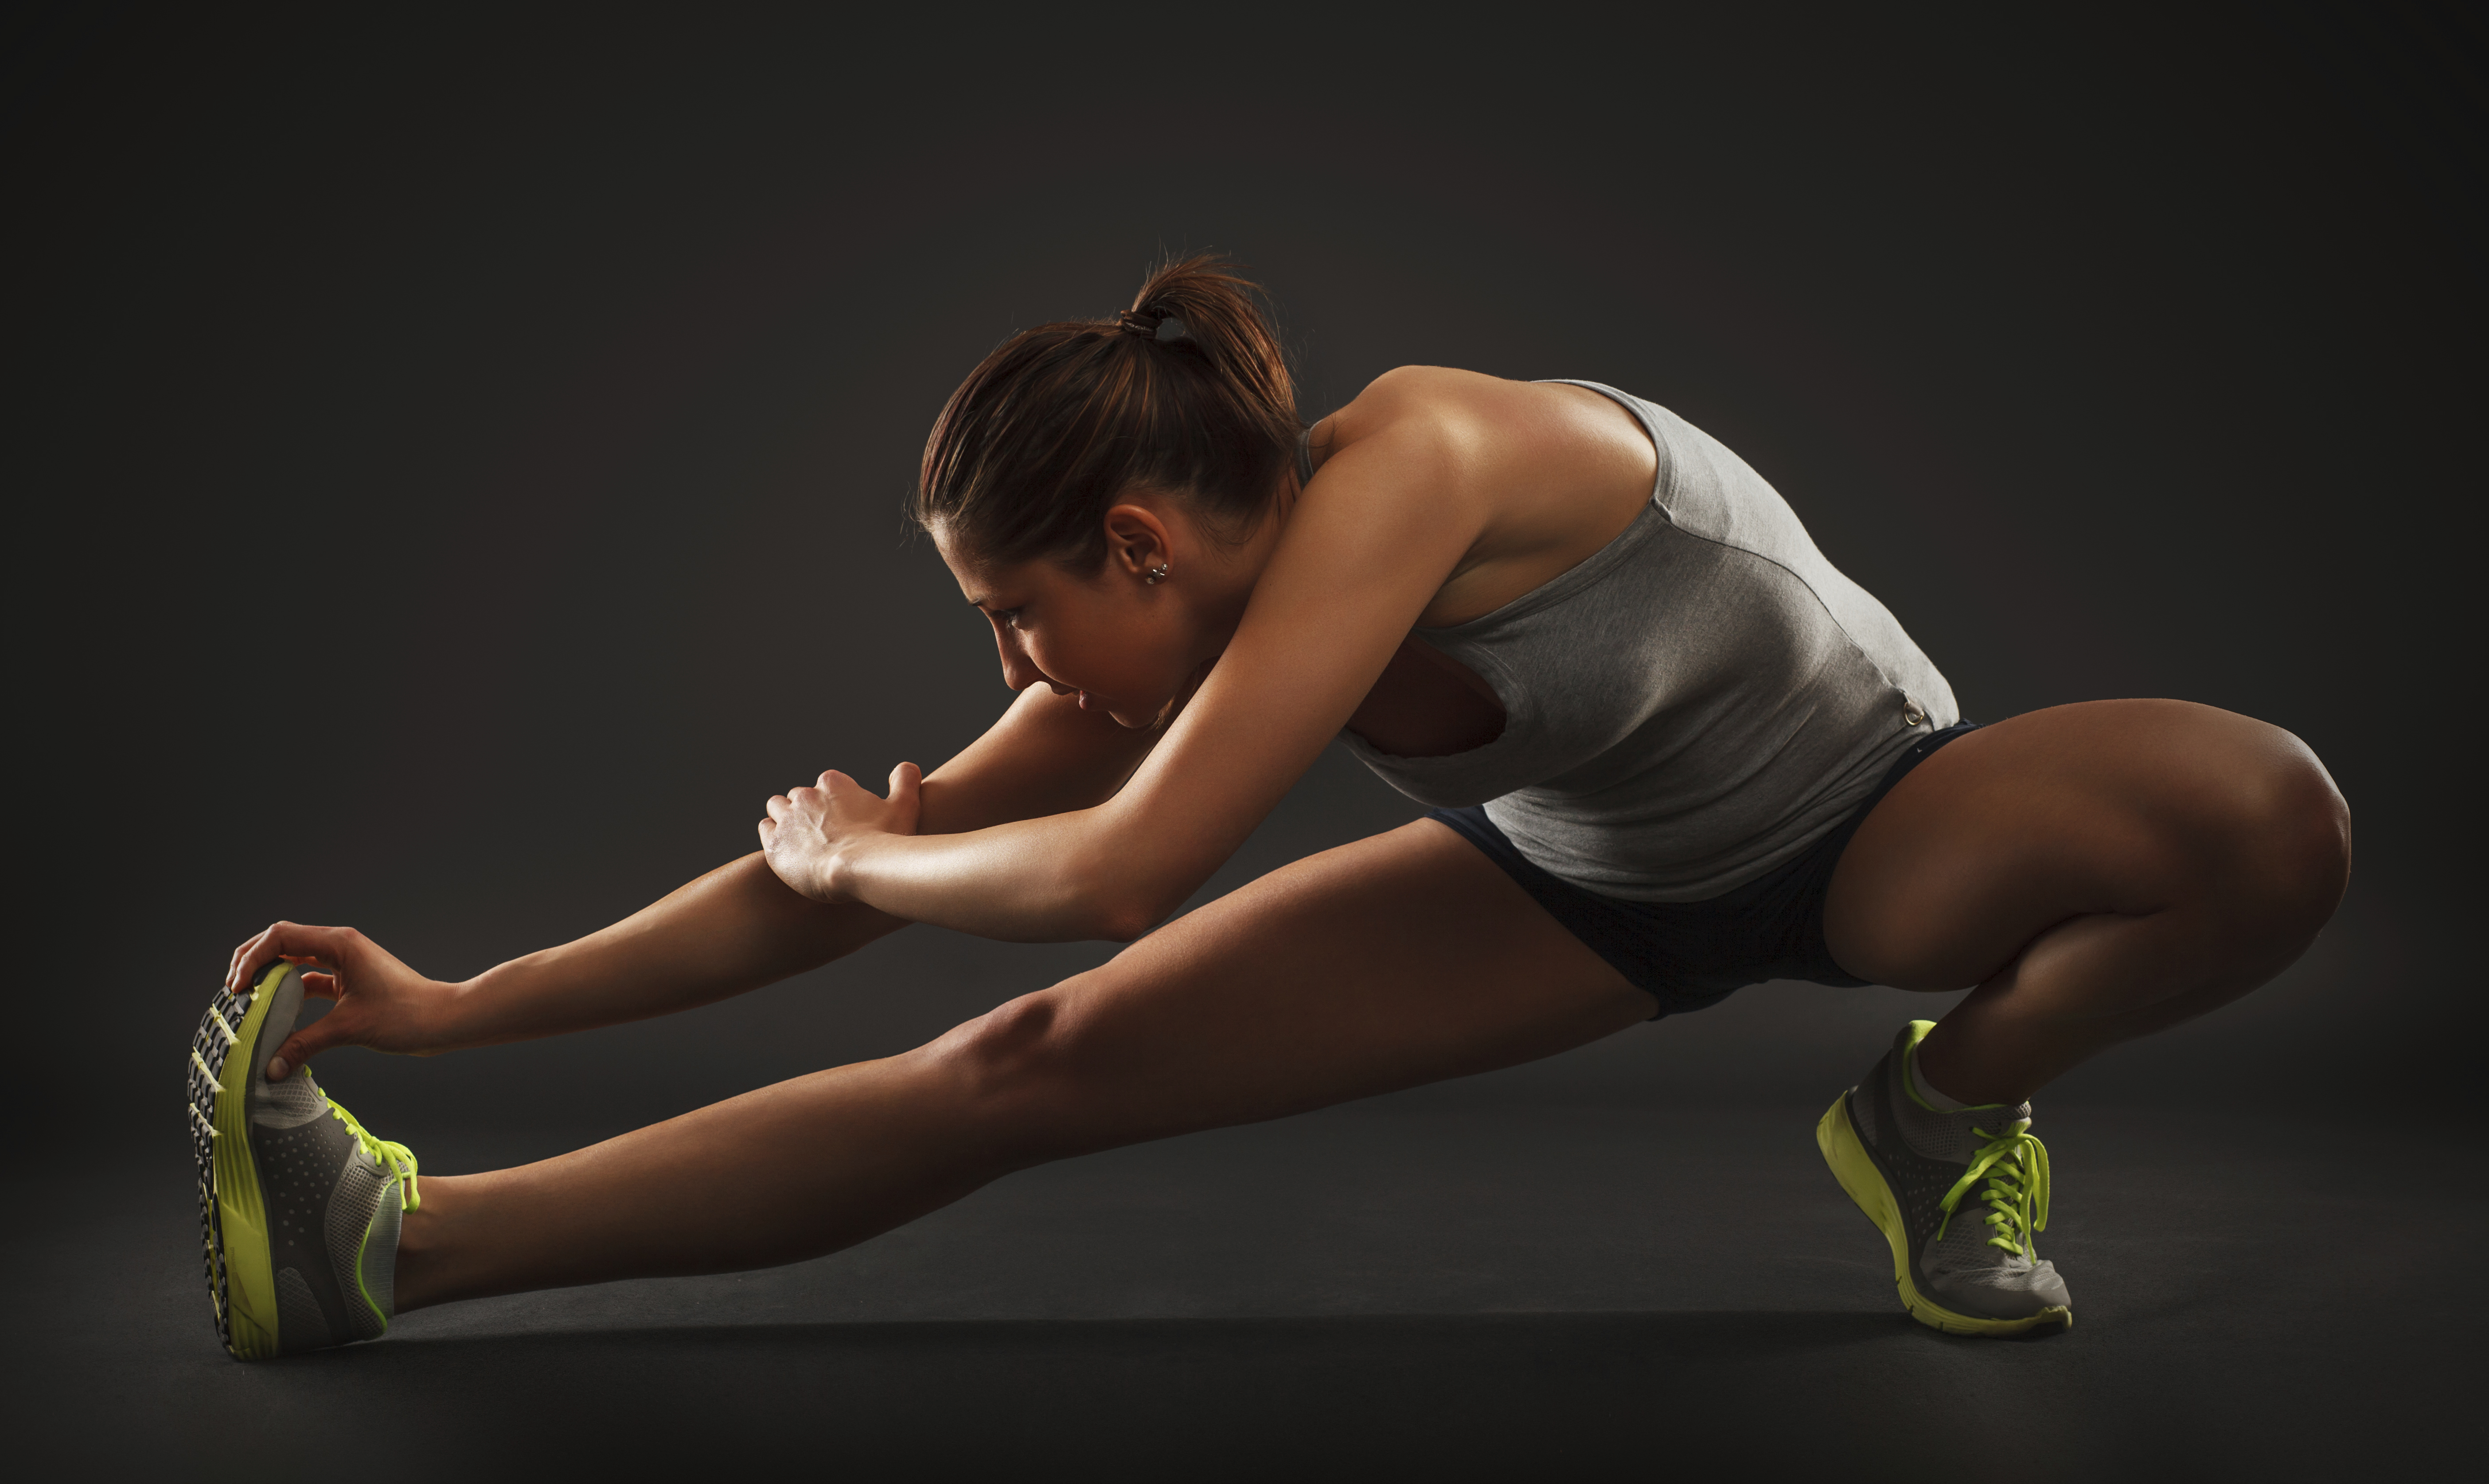 5 Workout Moves That Will Change Your Body